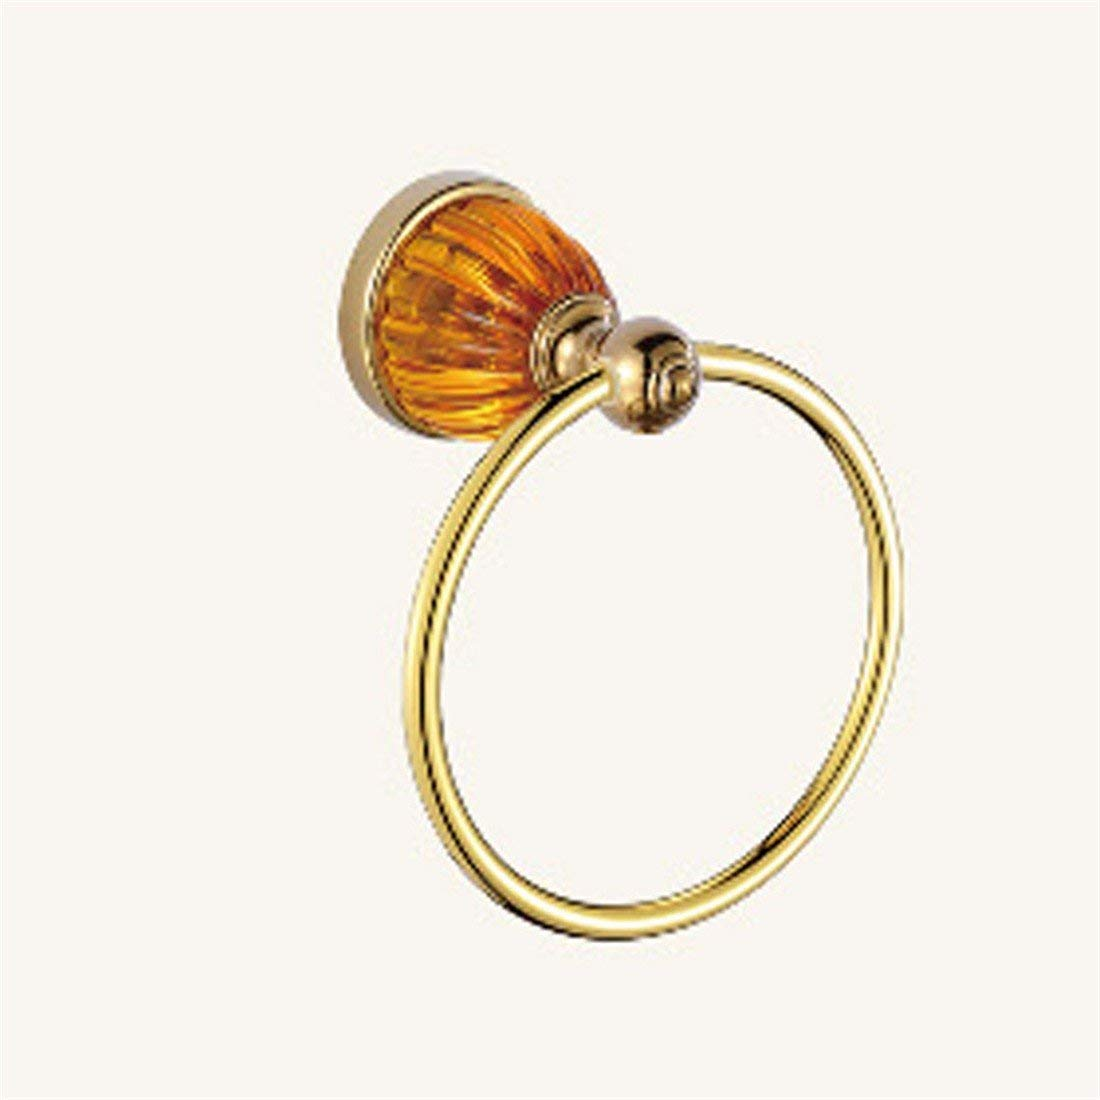 LAONA European style gold zinc alloy amber base bathroom fittings towel ring single and double rod,Towel ring